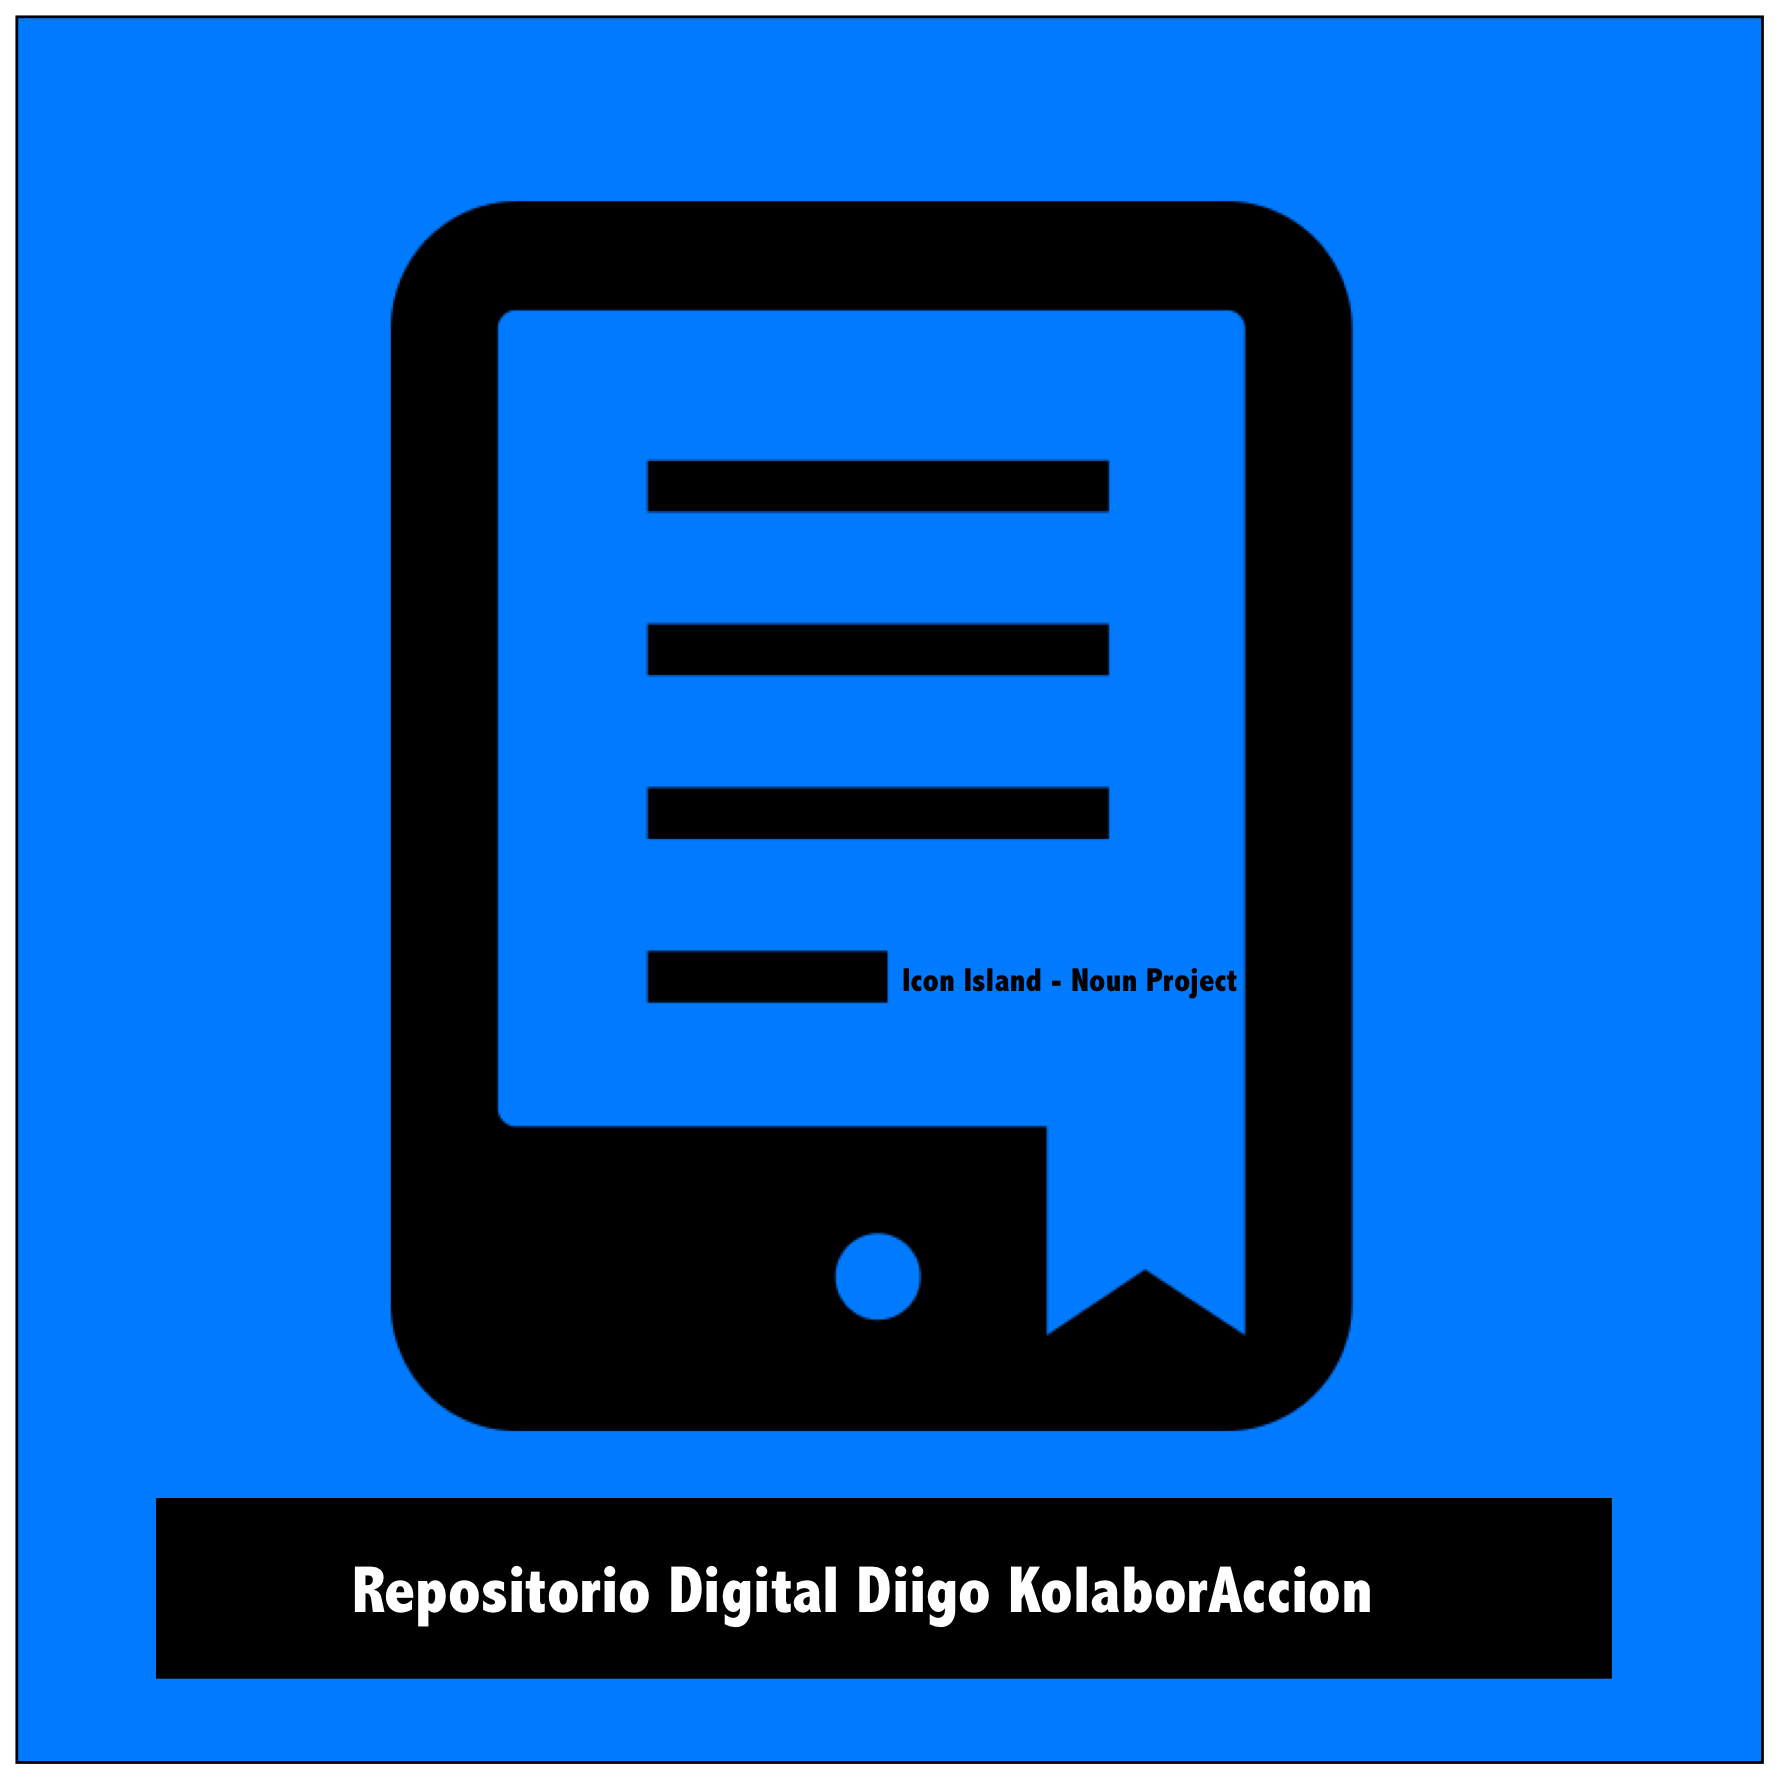 Repositorio Diigo Kolaboraccion